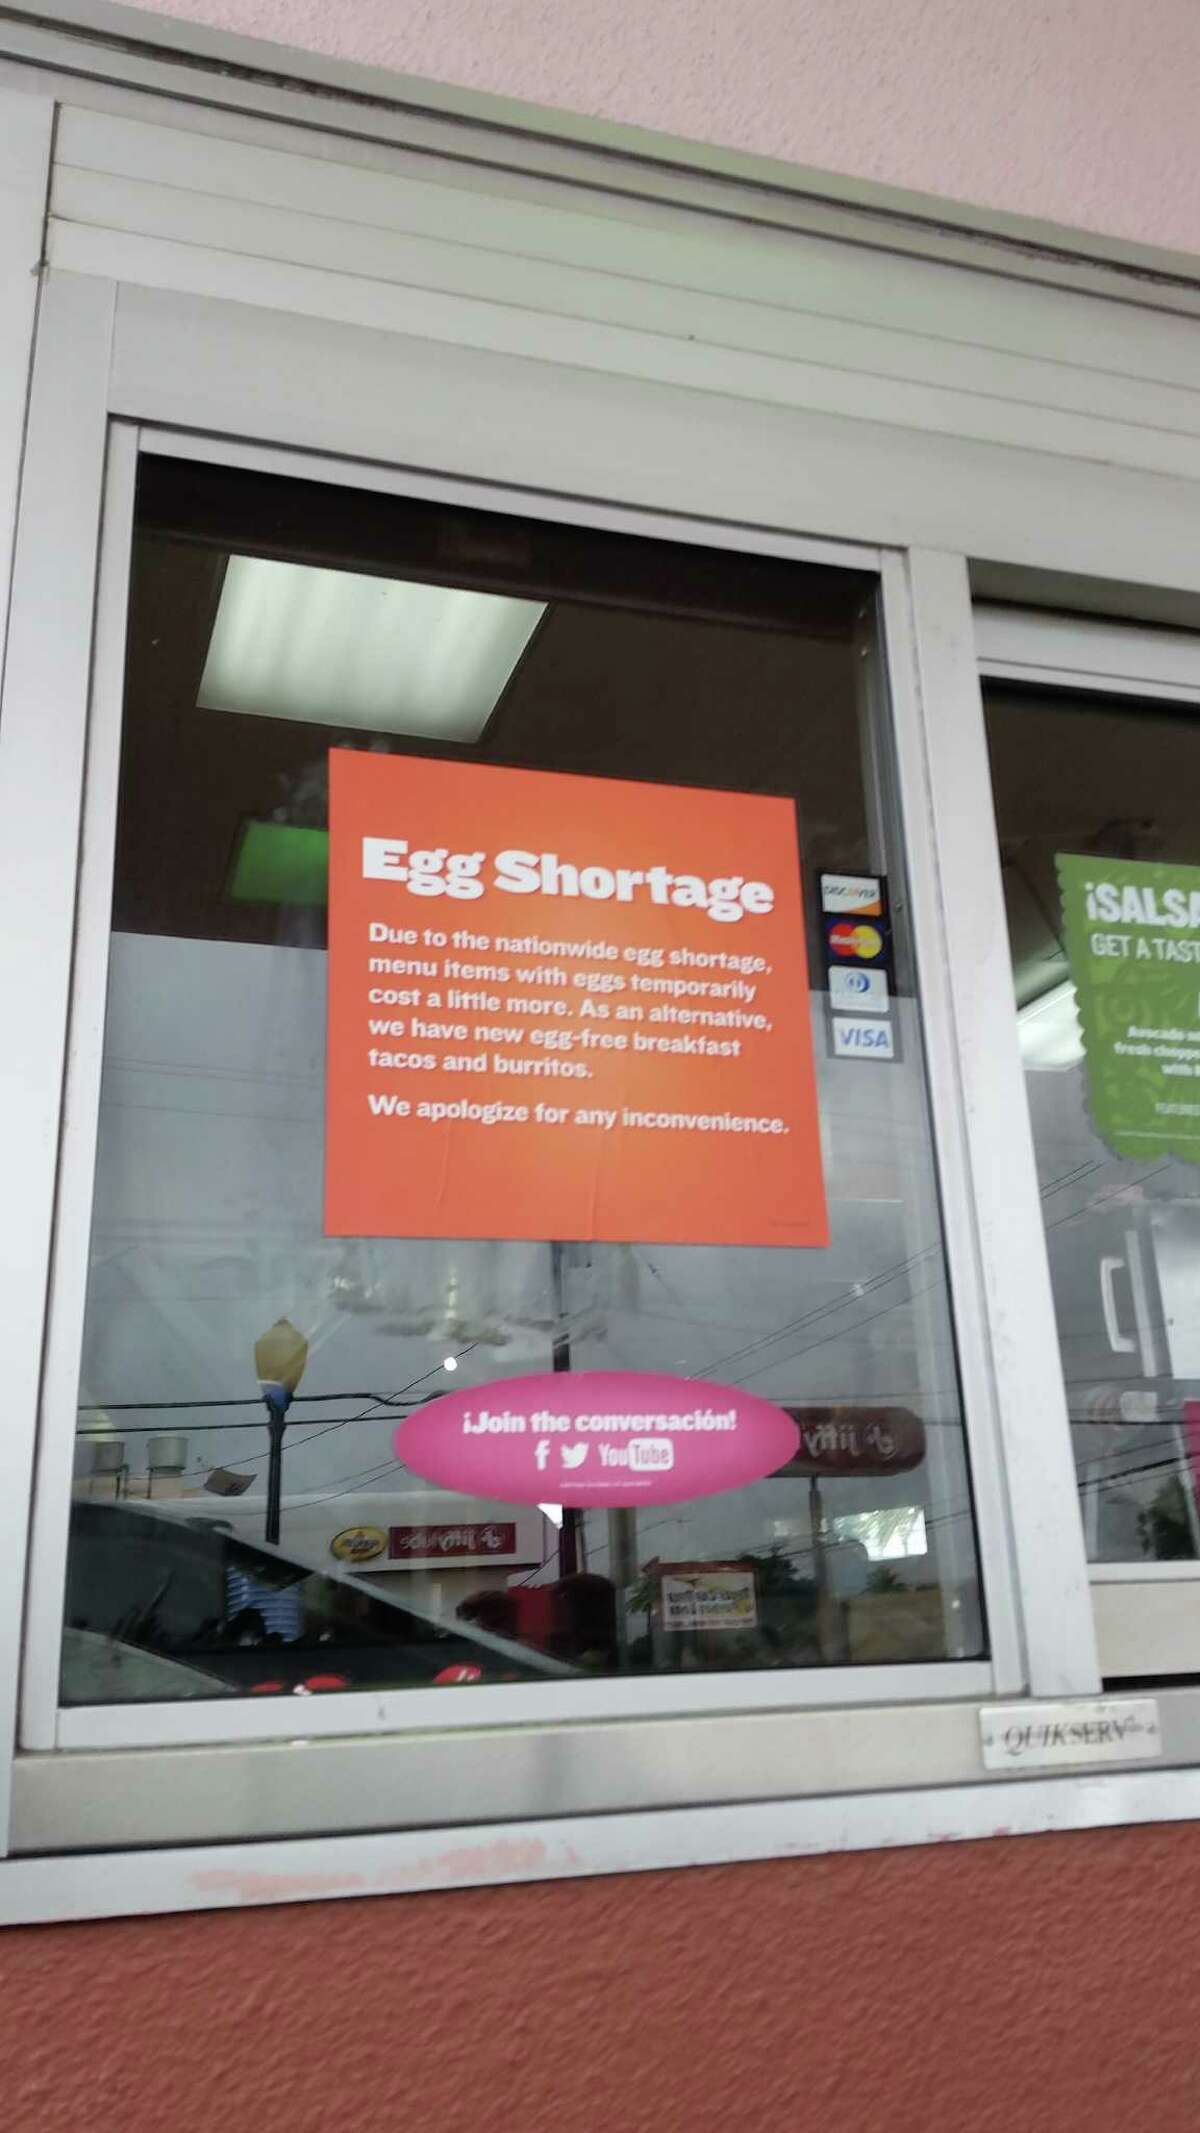 A sign at a Taco Cabano on Fredericksburg Road tells customers that the prices of egg dishes have risen and that eggless breakfast tacos and burritos have been added.